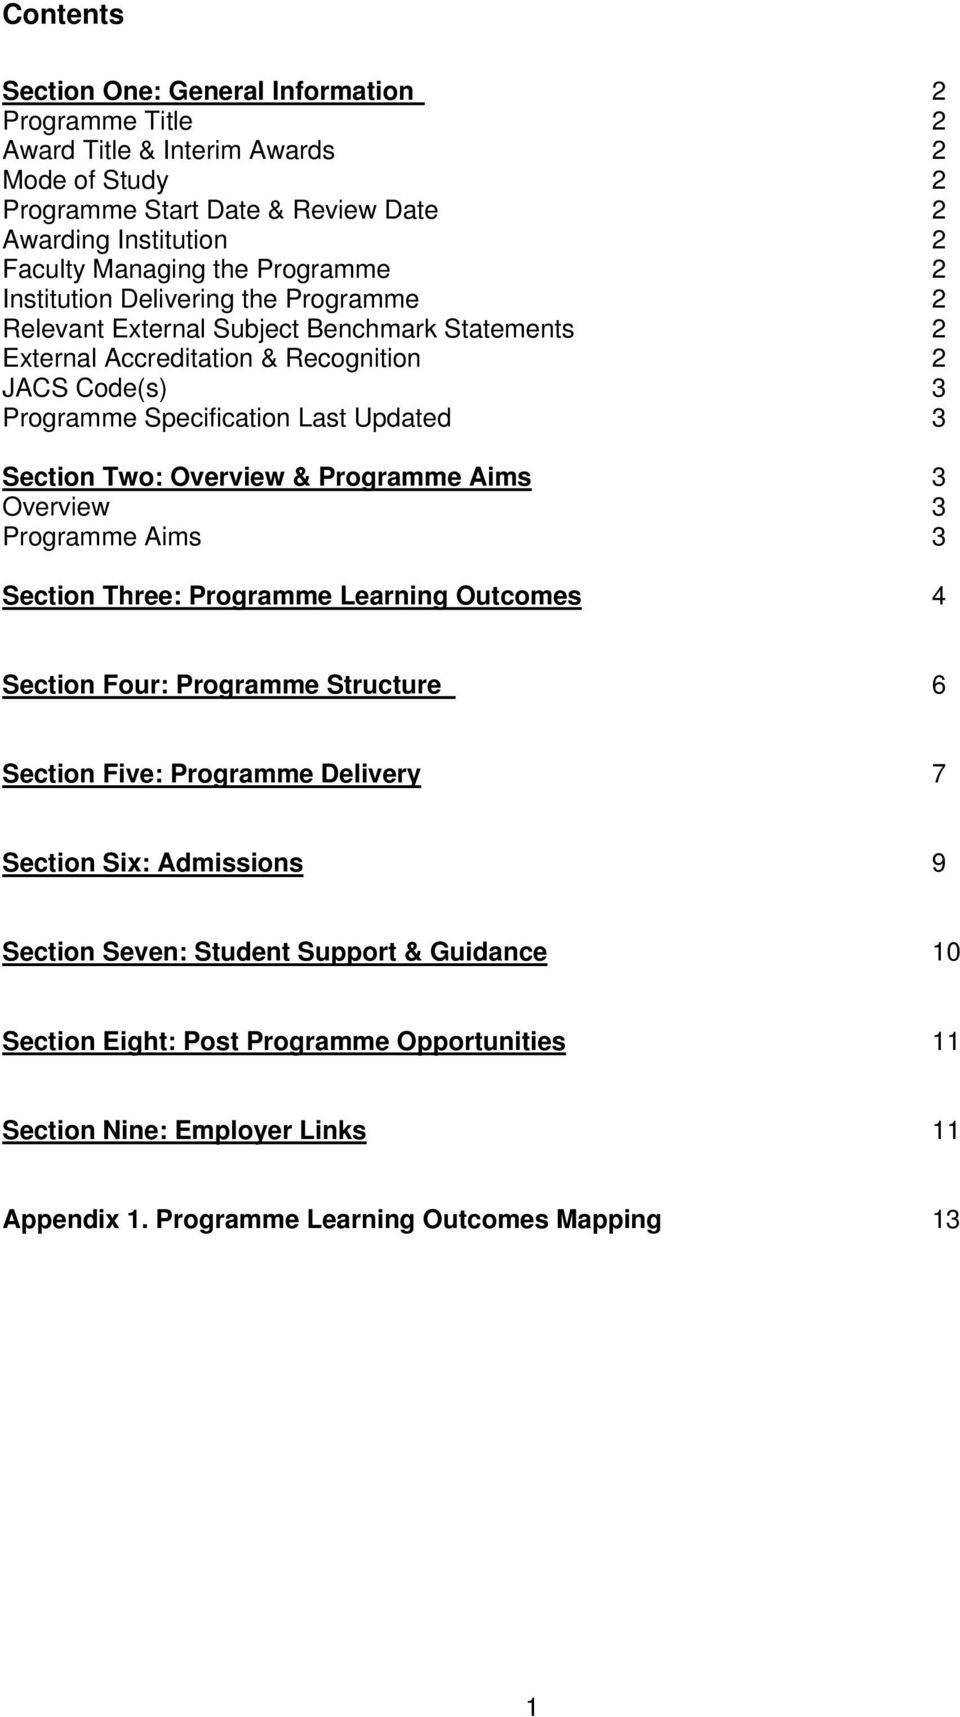 Section Two: Overview & Programme Aims 3 Overview 3 Programme Aims 3 Section Three: Programme Learning Outcomes 4 Section Four: Programme Structure 6 Section Five: Programme Delivery 7 Section